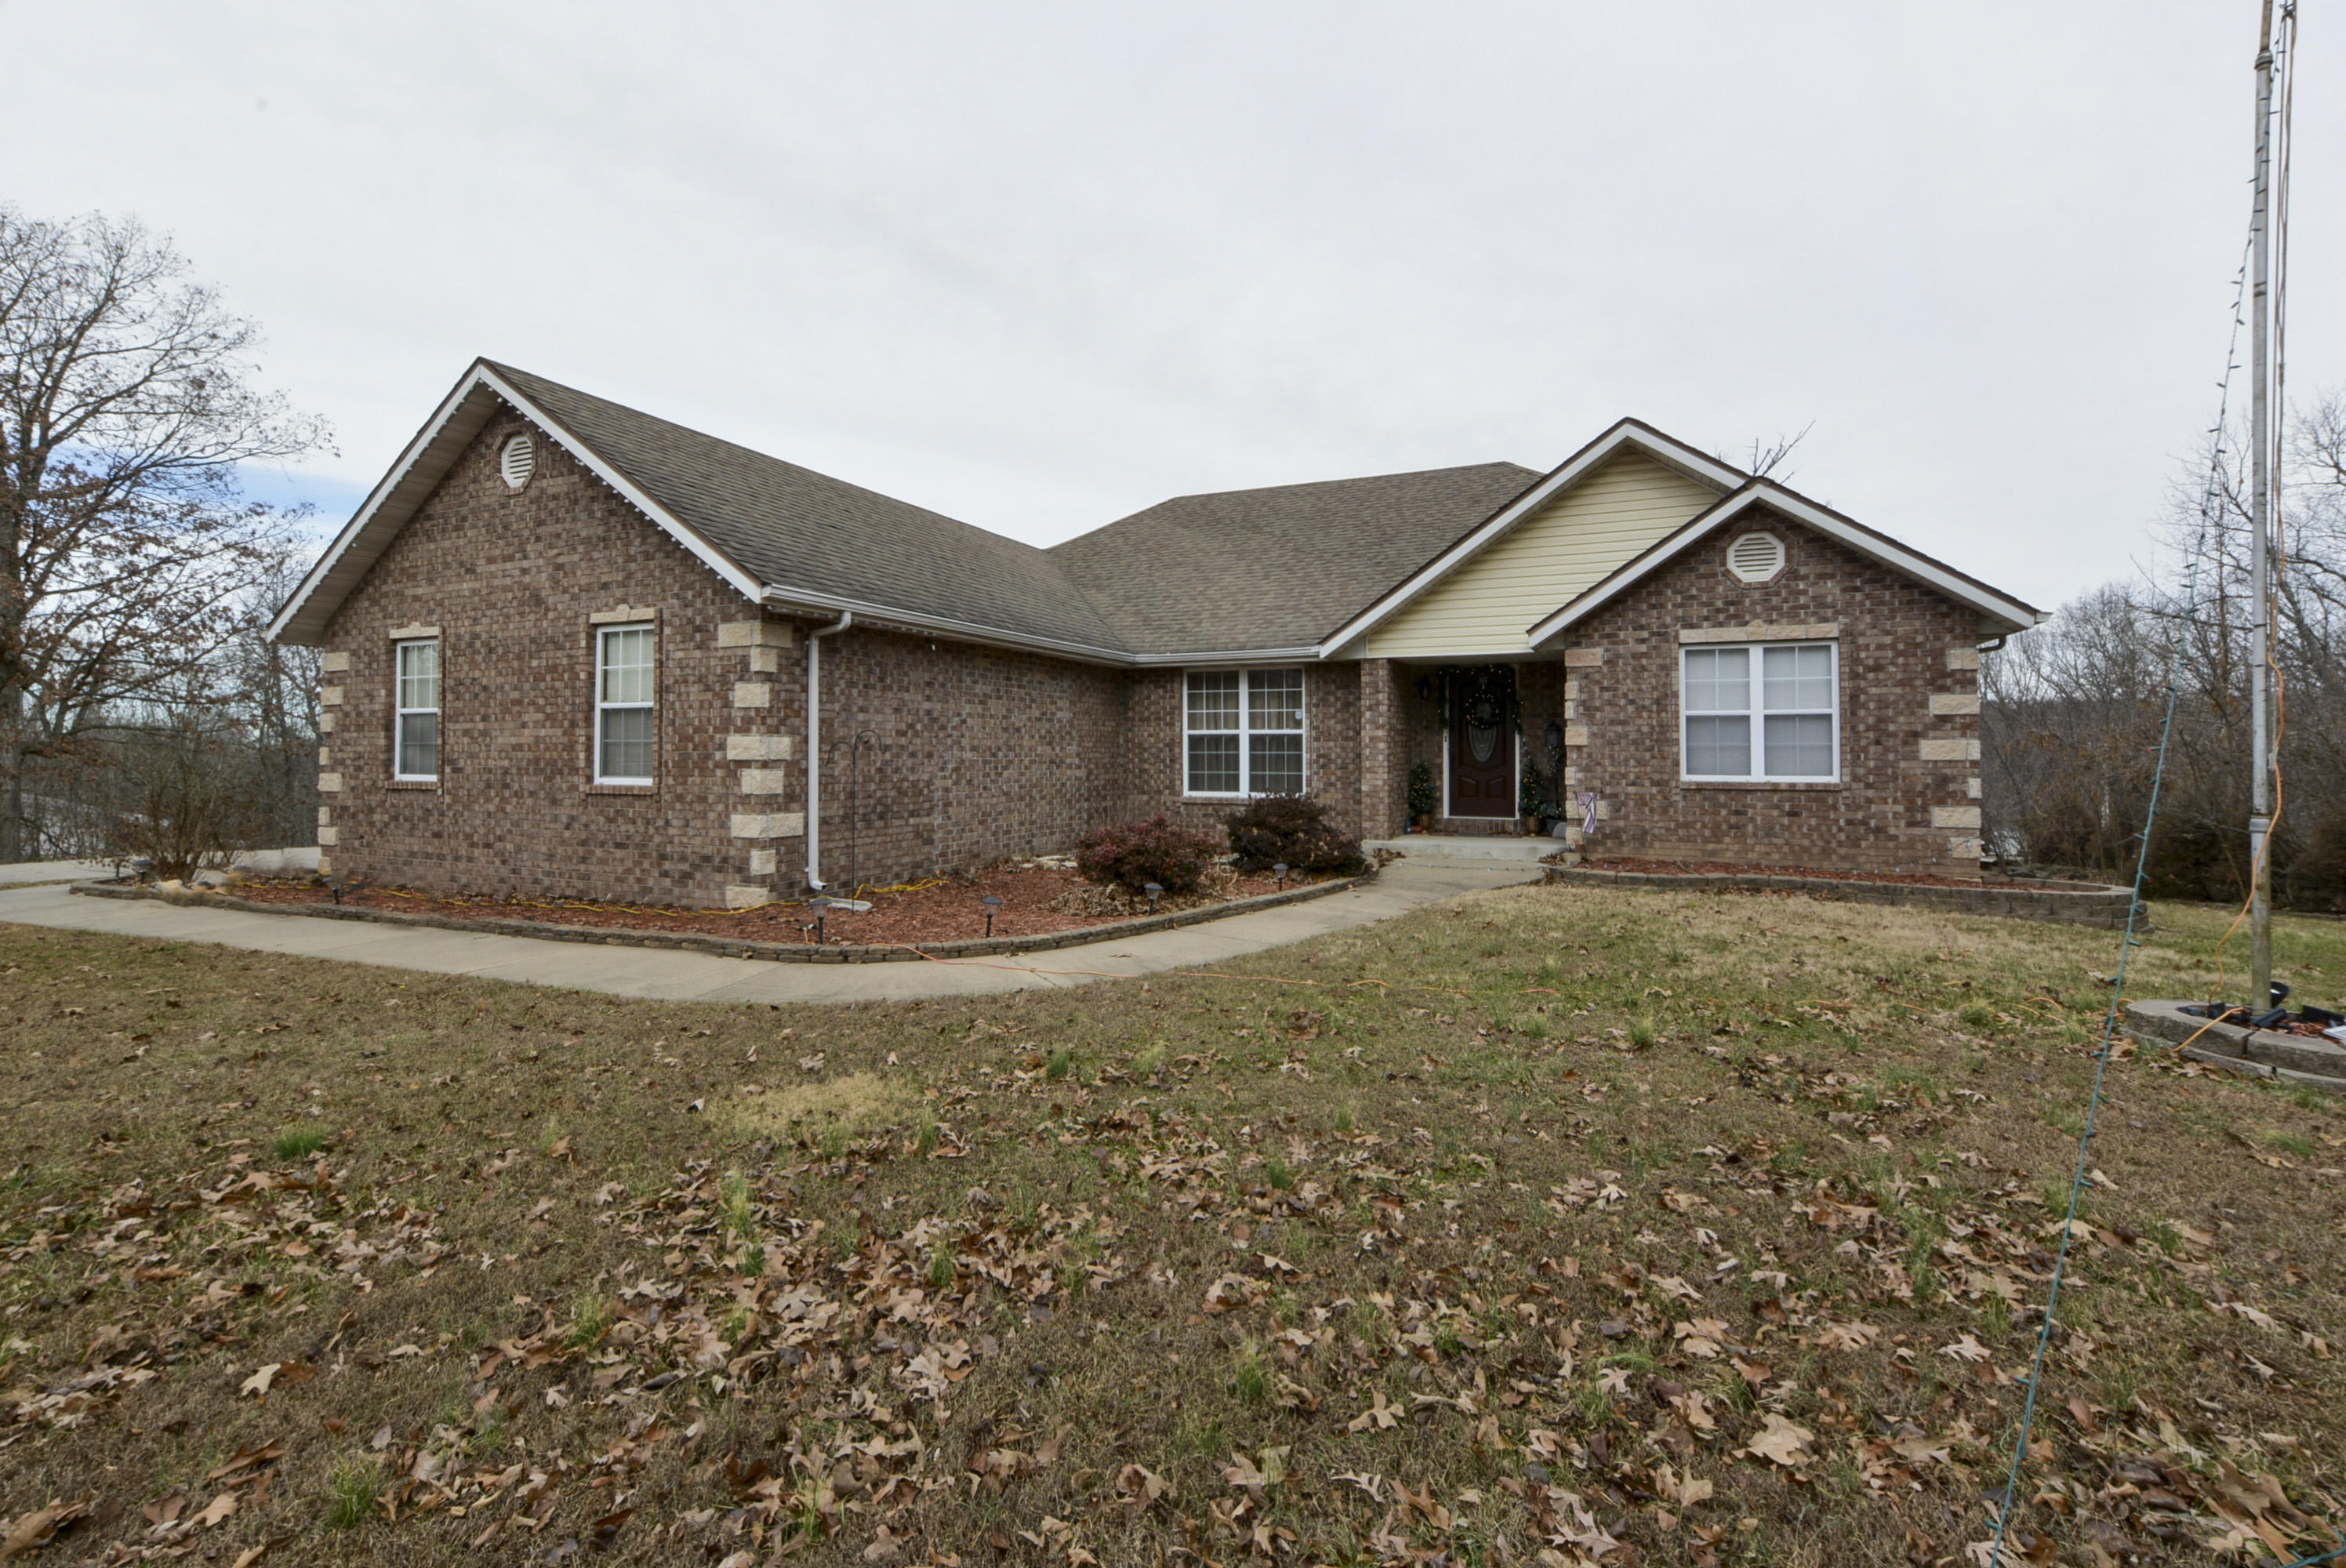 3360 State Hwy Pp Fordland, MO 65652